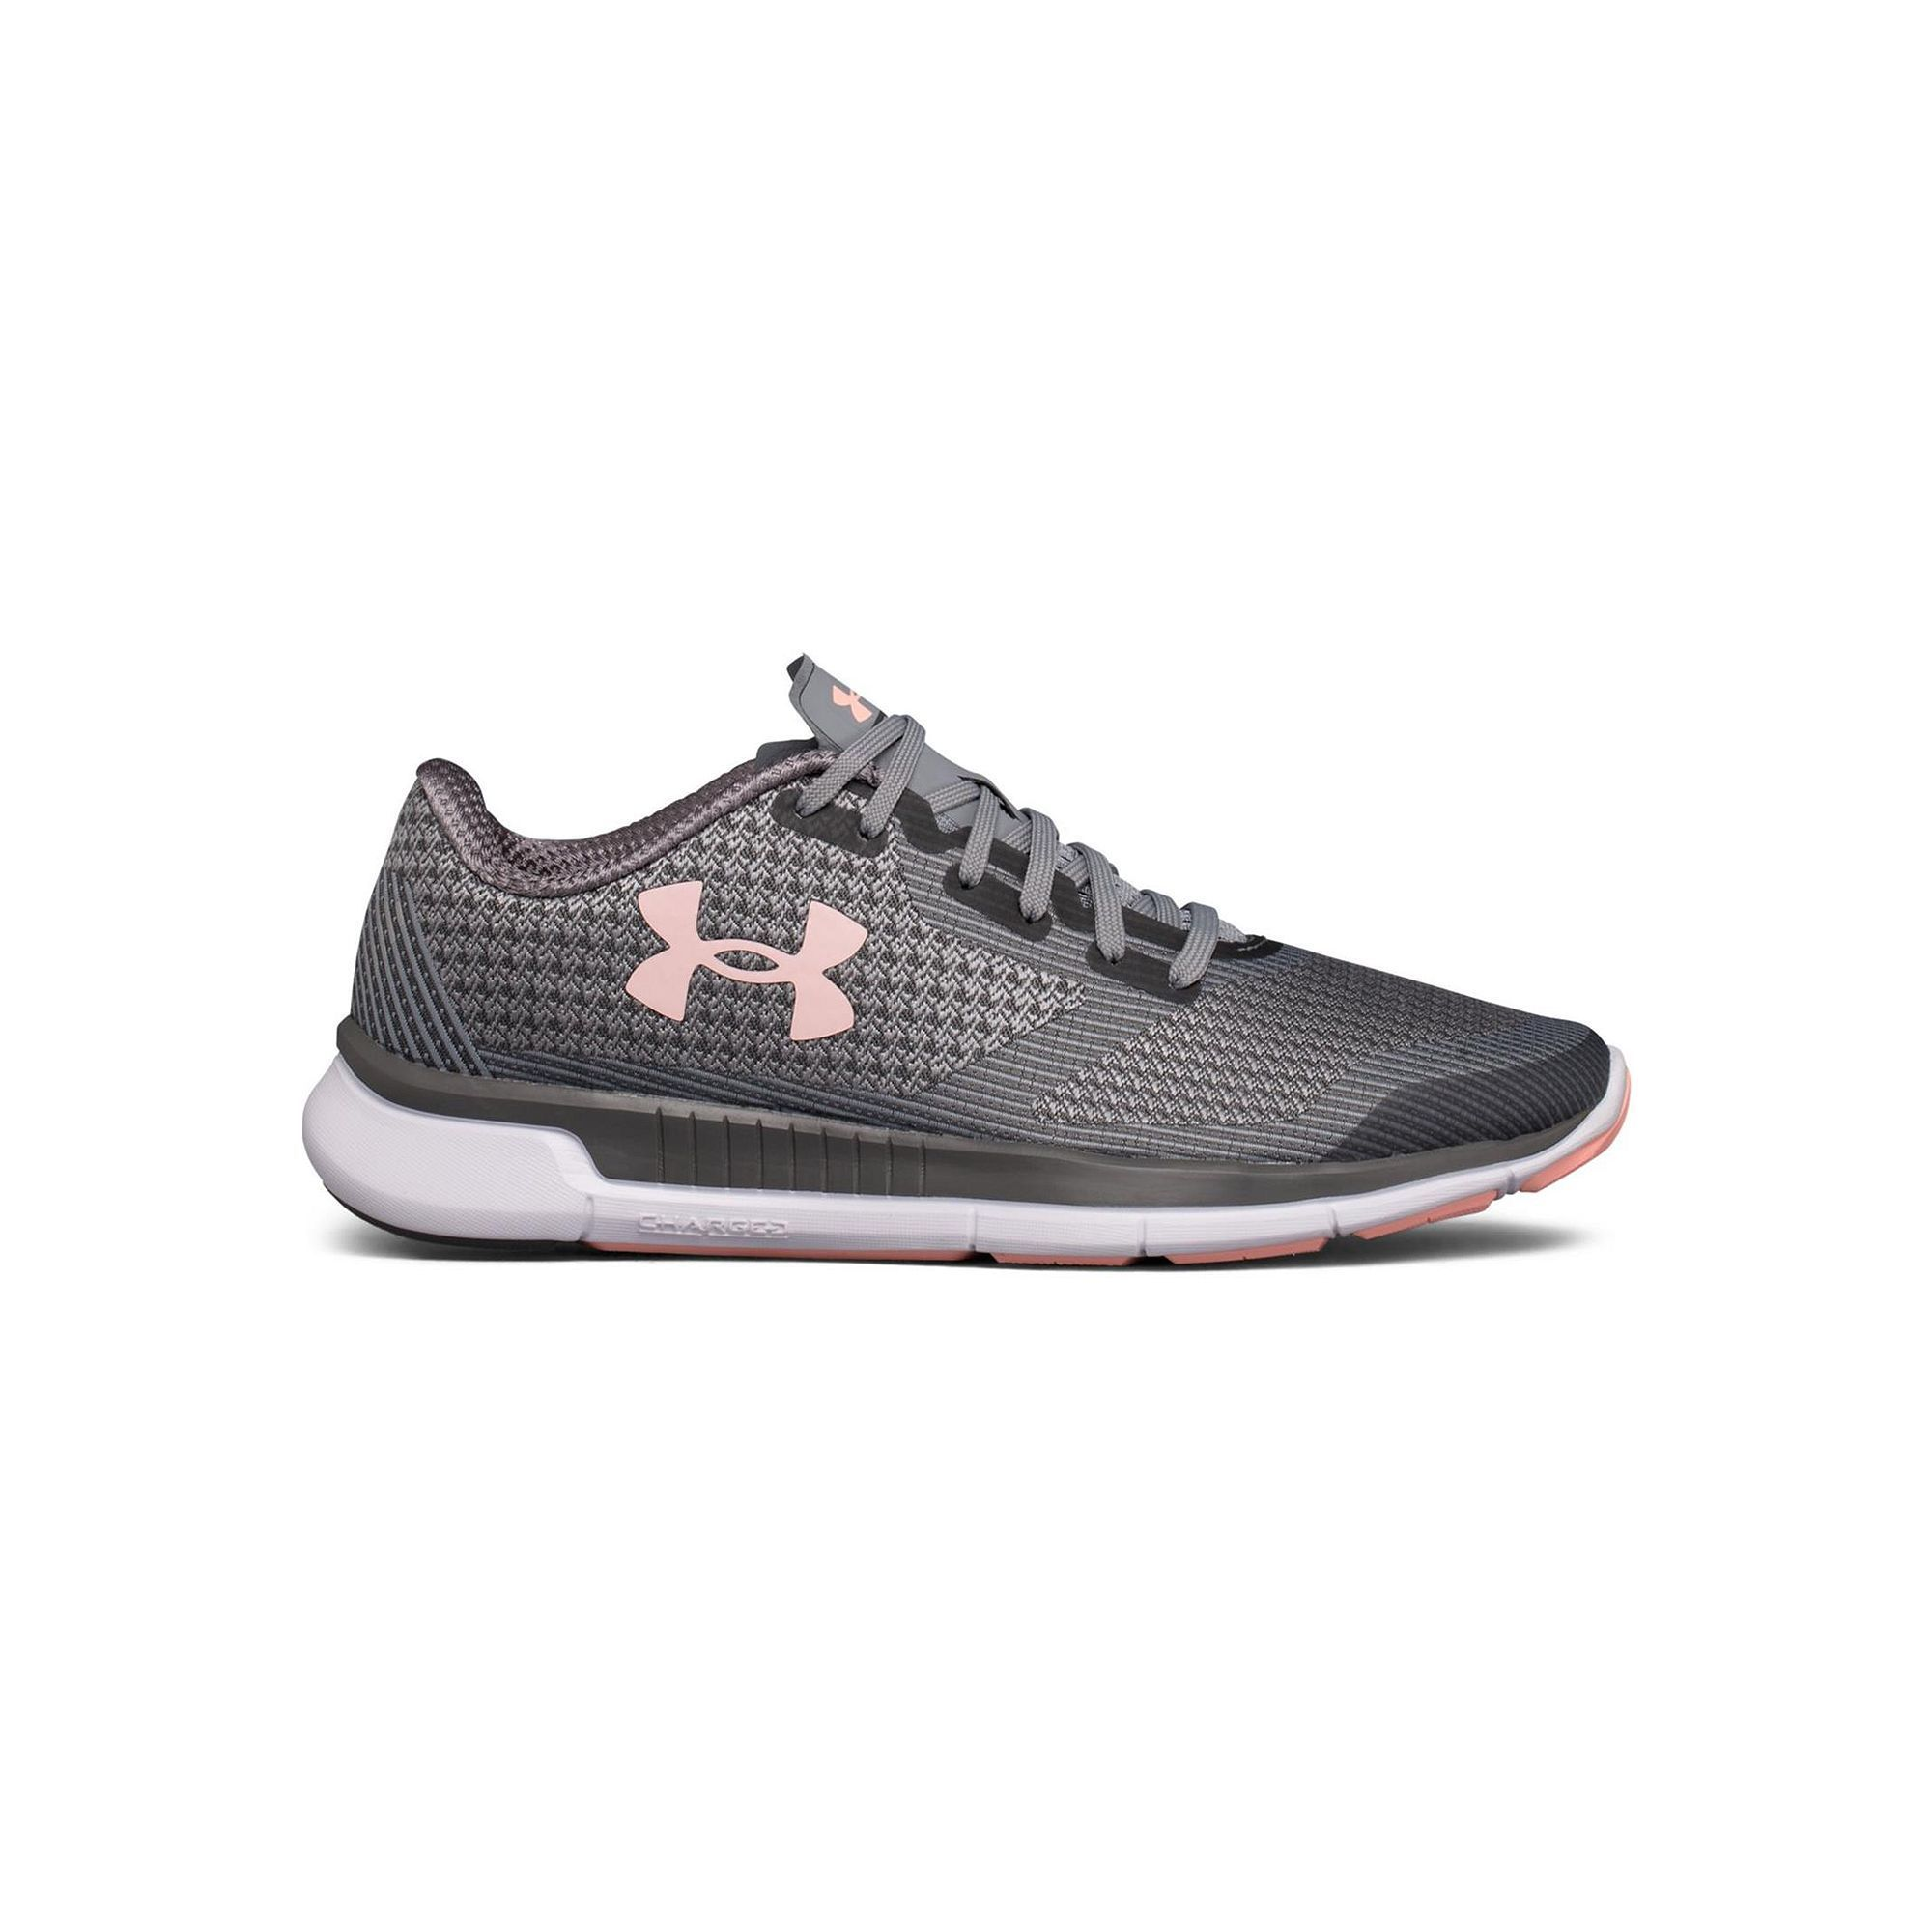 ... Scarpe Da Corsa Per Donne e altro. Under Armour Charged Lightning  Women's Running Shoes, Size: 6.5, White